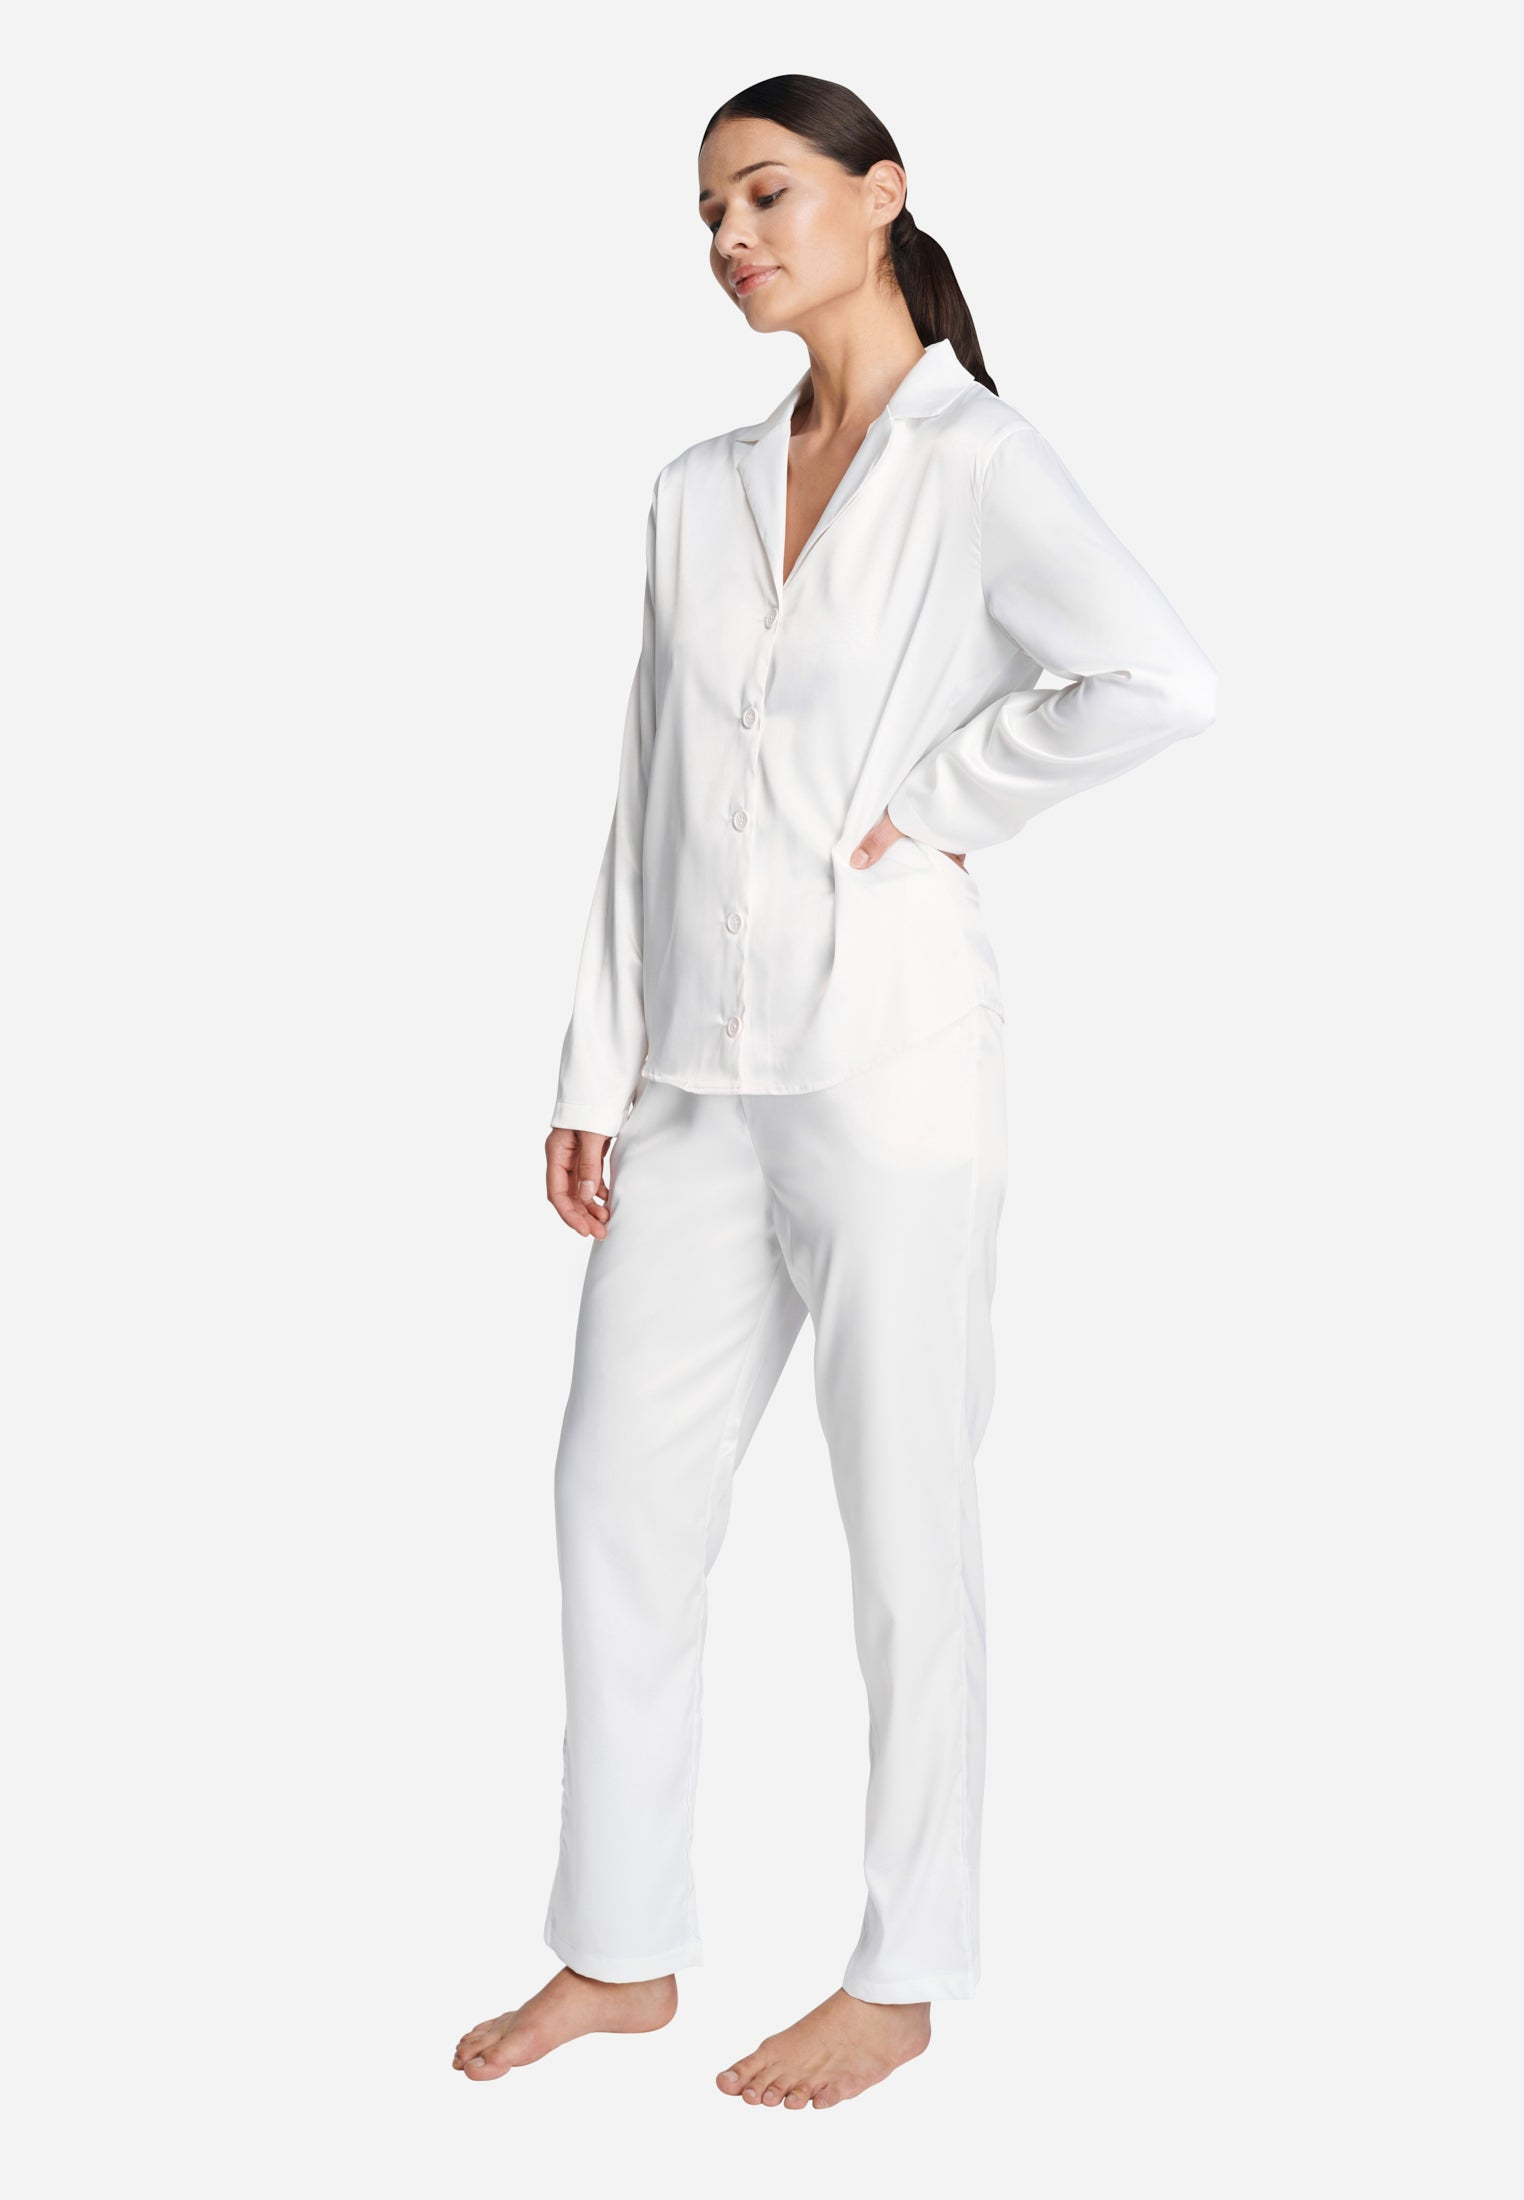 OW INTIMATES SKYE PJ Set Set 001 - White